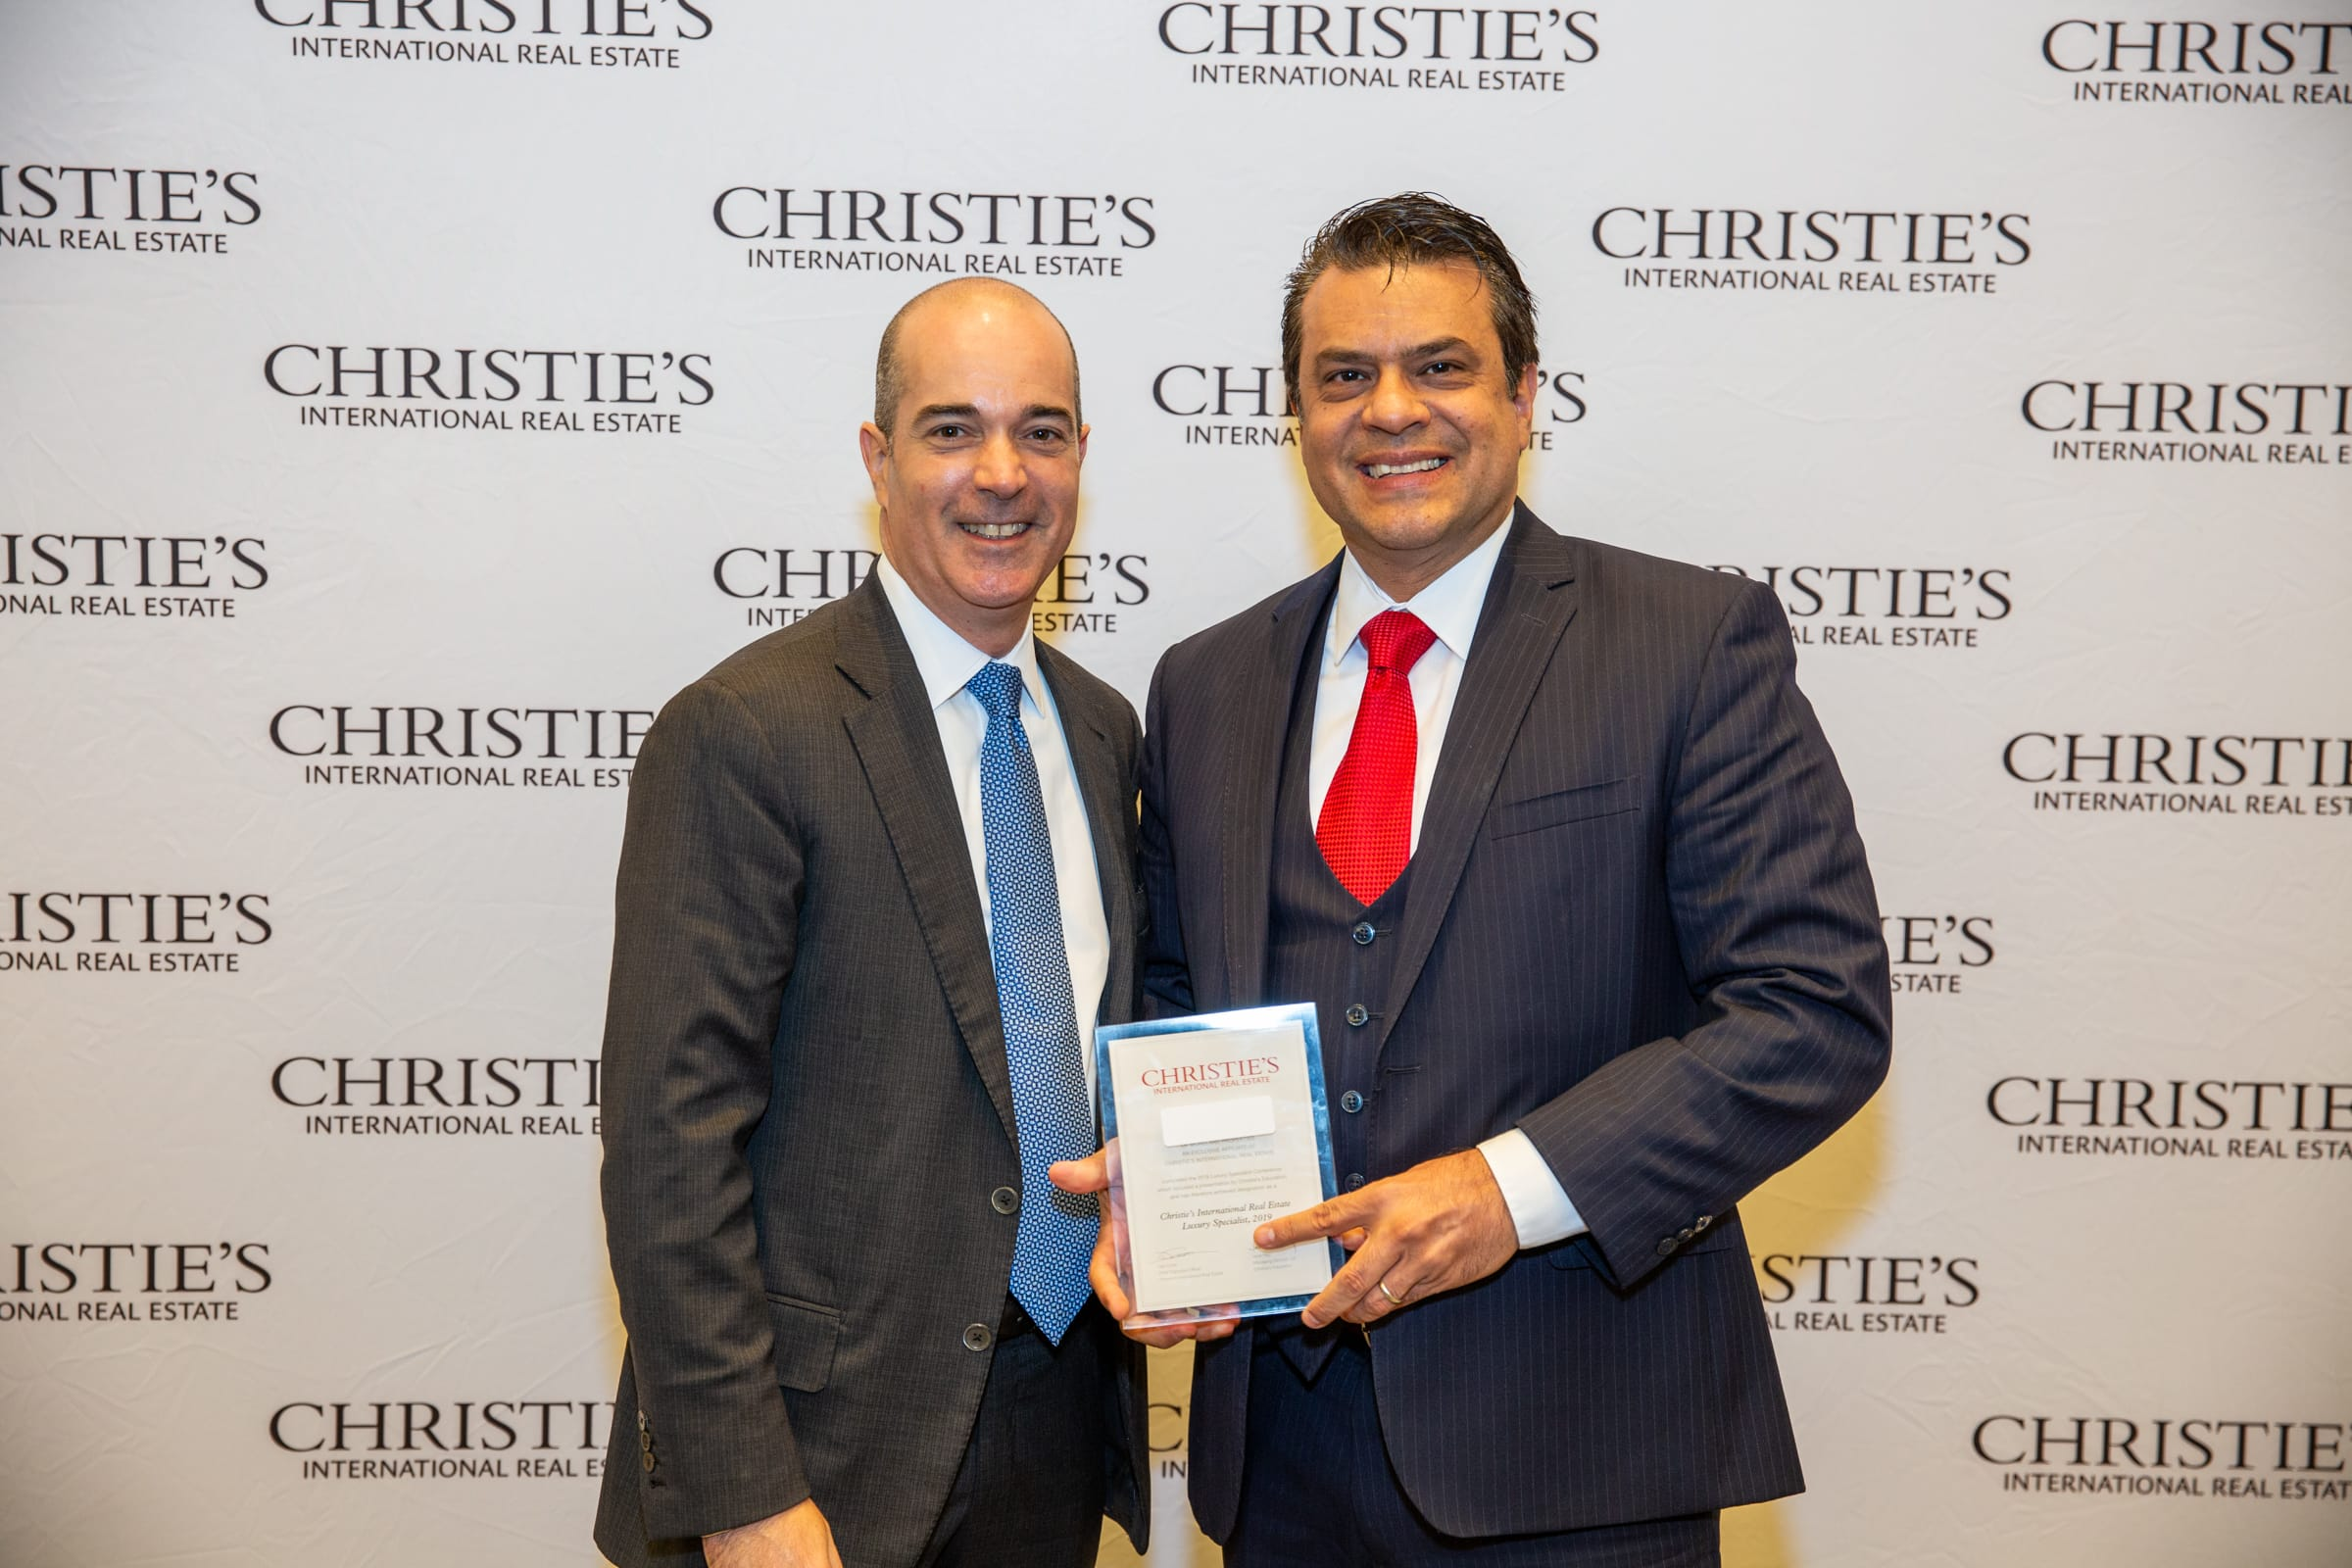 Luxury Specialist Pablo Rener and Christies' International Real Estate executive